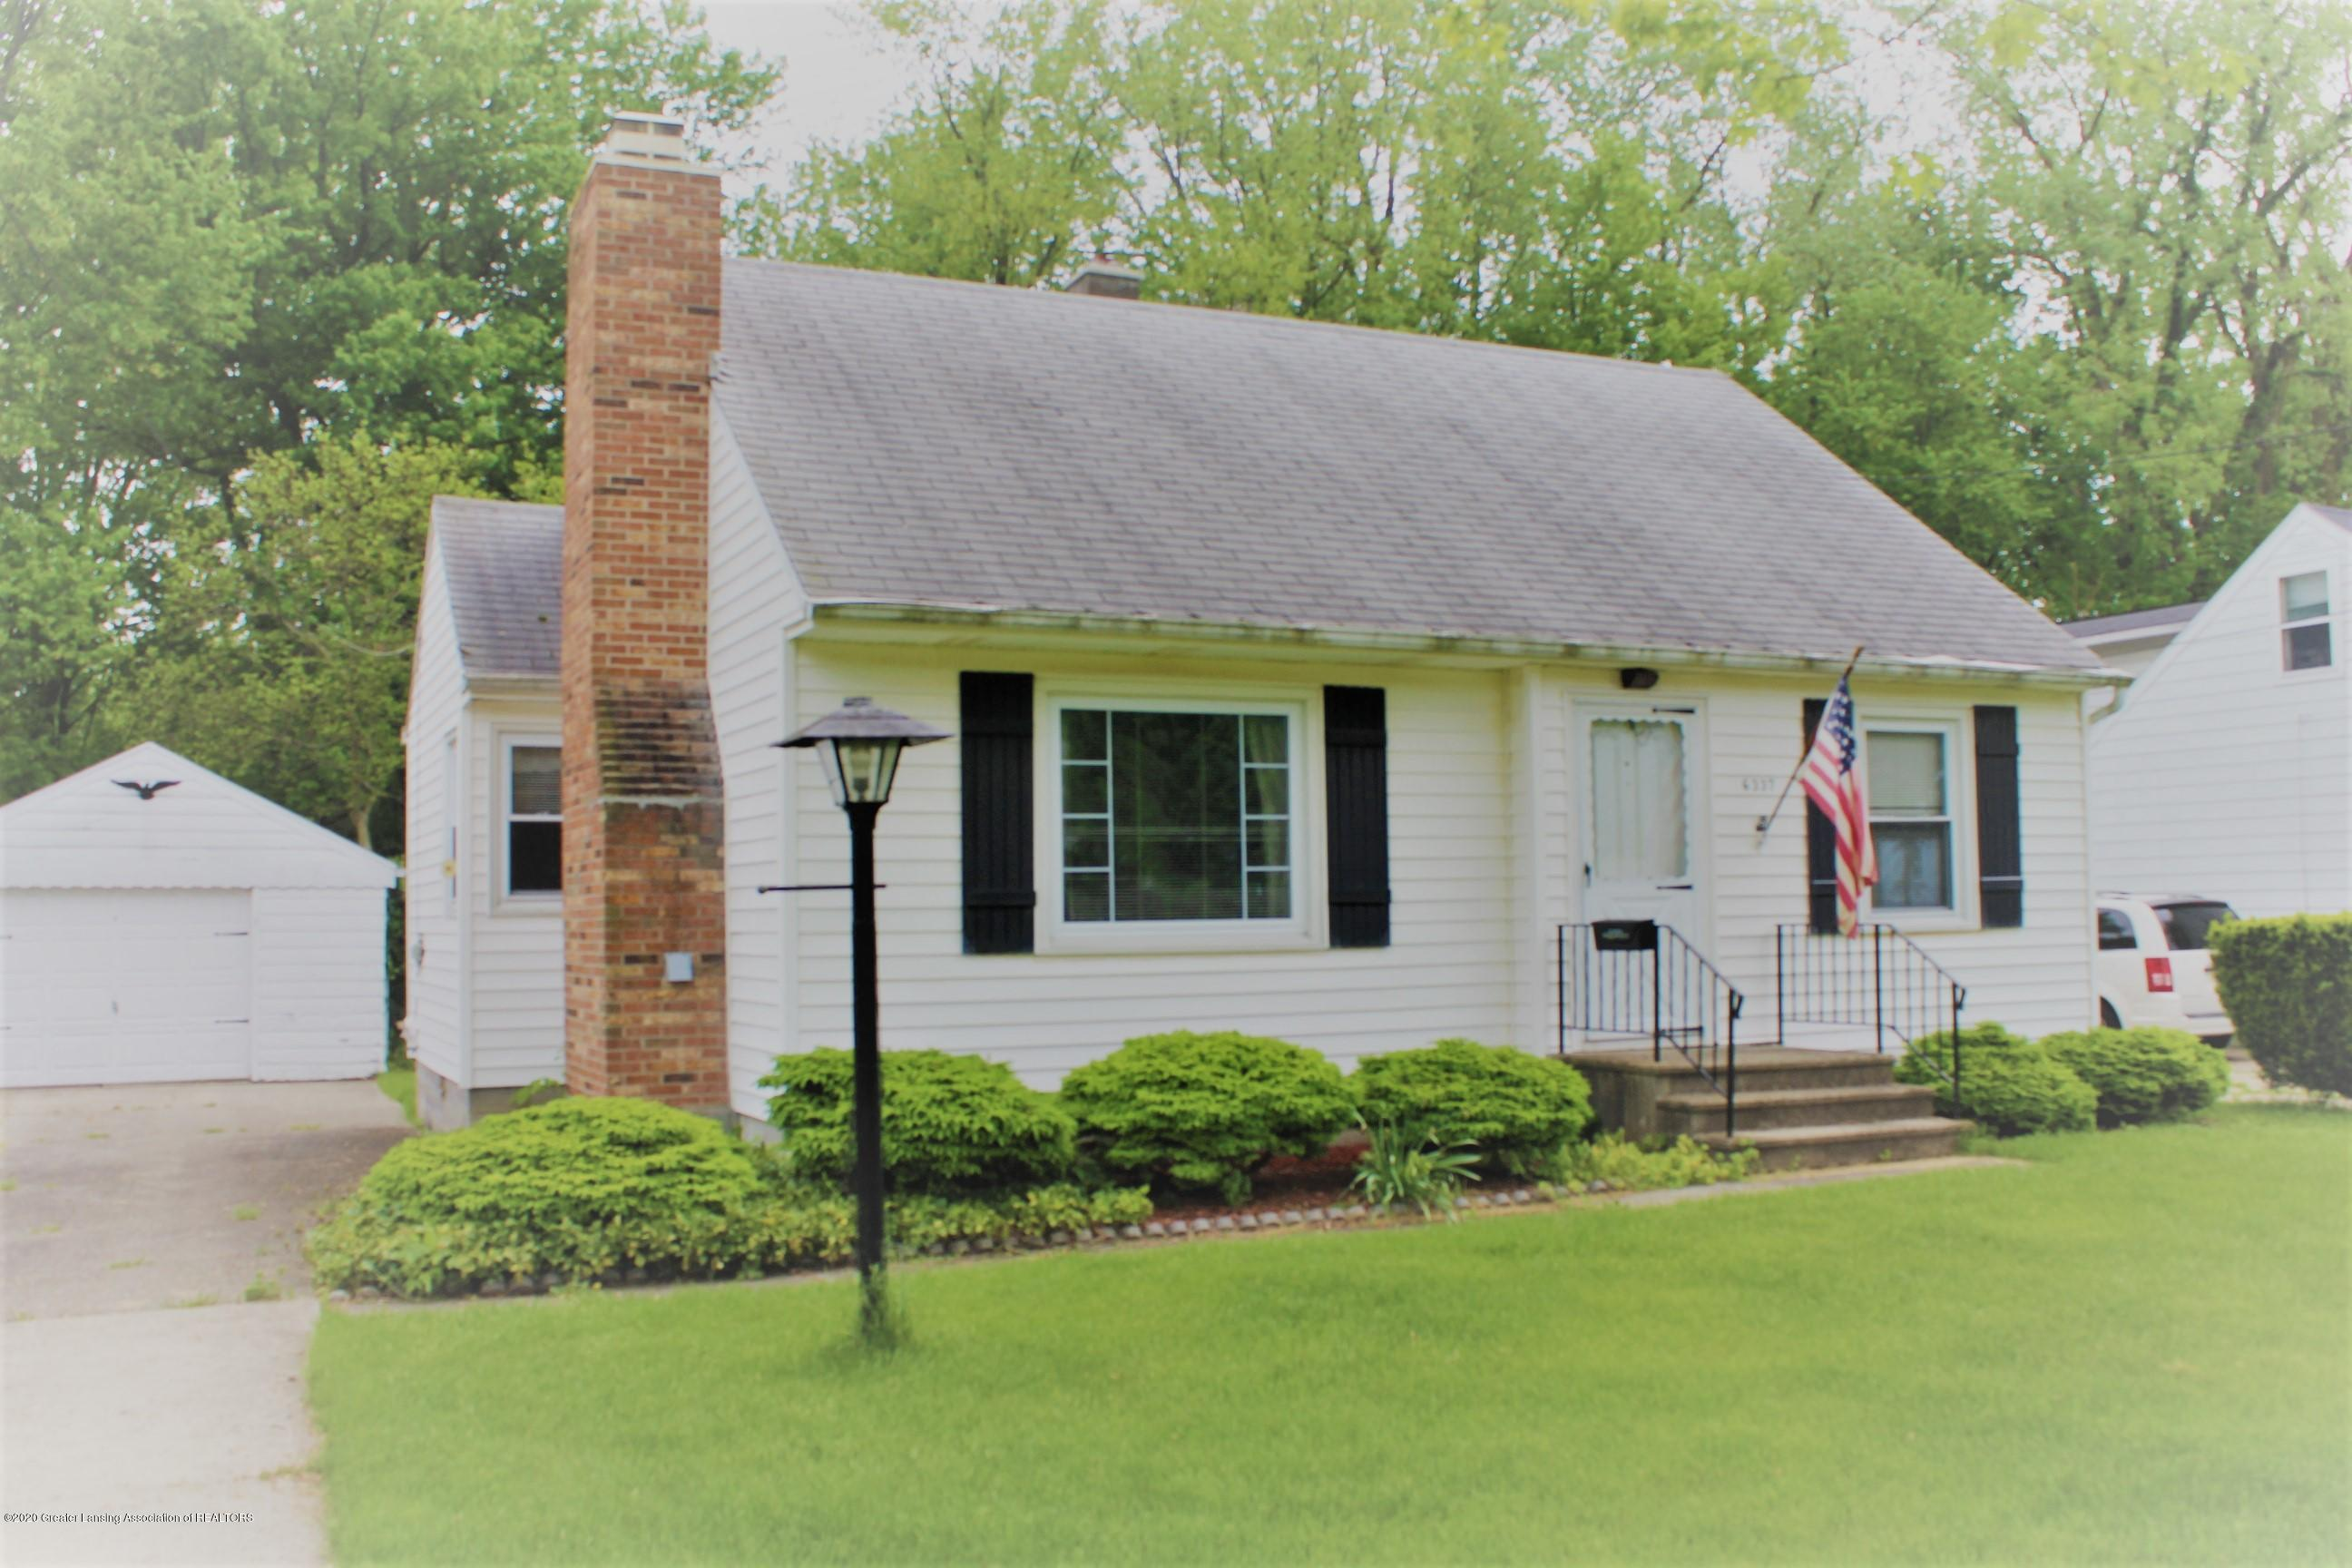 6337 Coulson Ct - FRONT1 - 1